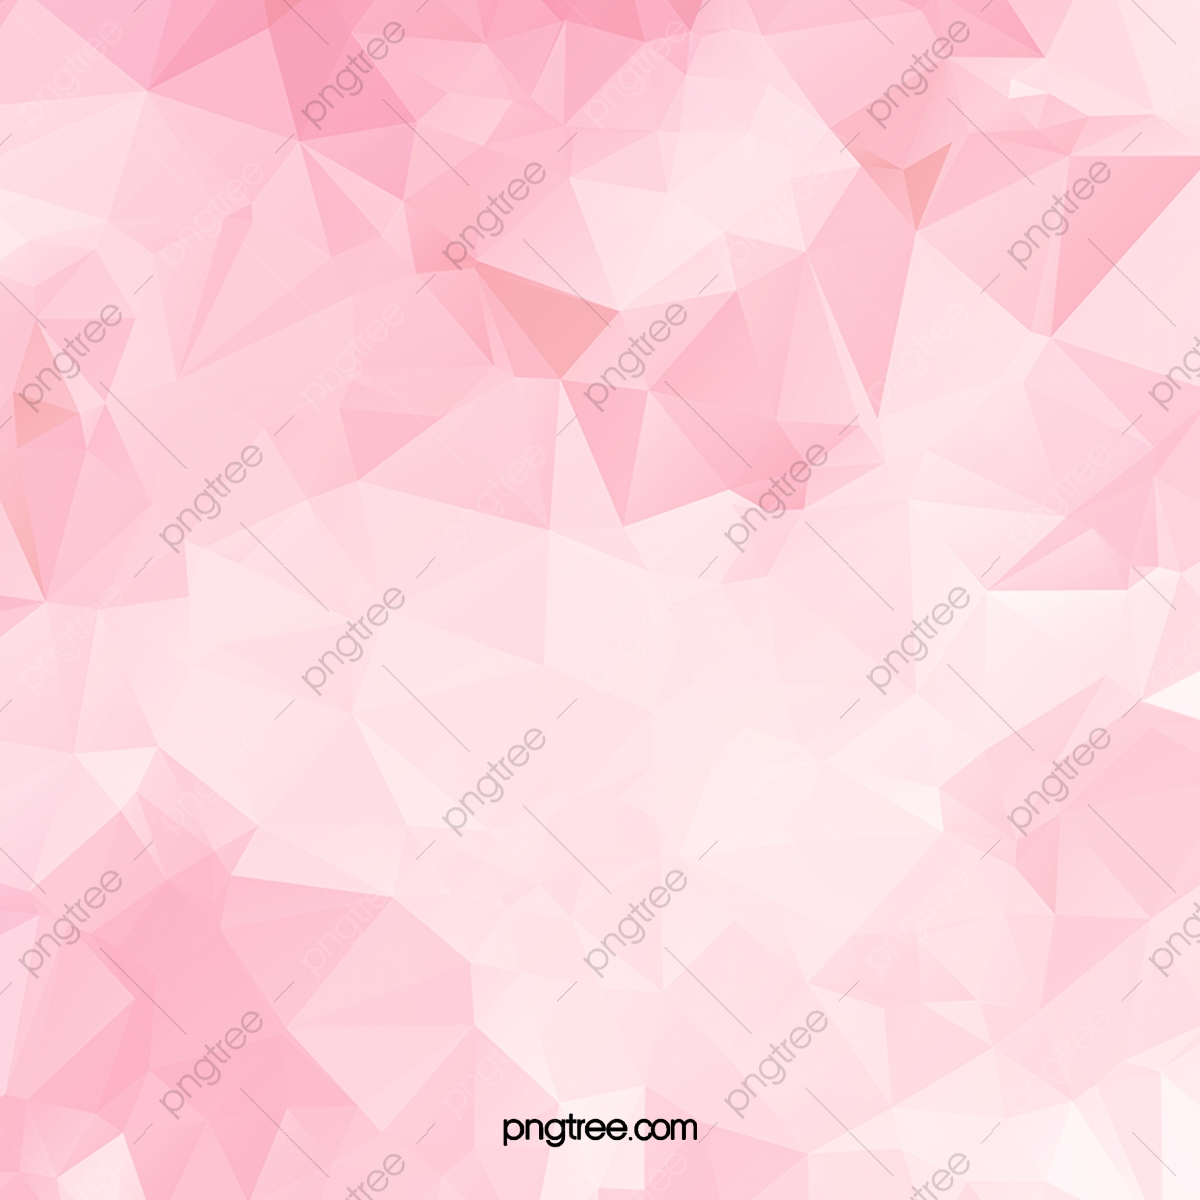 Flat Gradient Pink Aesthetic Background With Geometric Shape